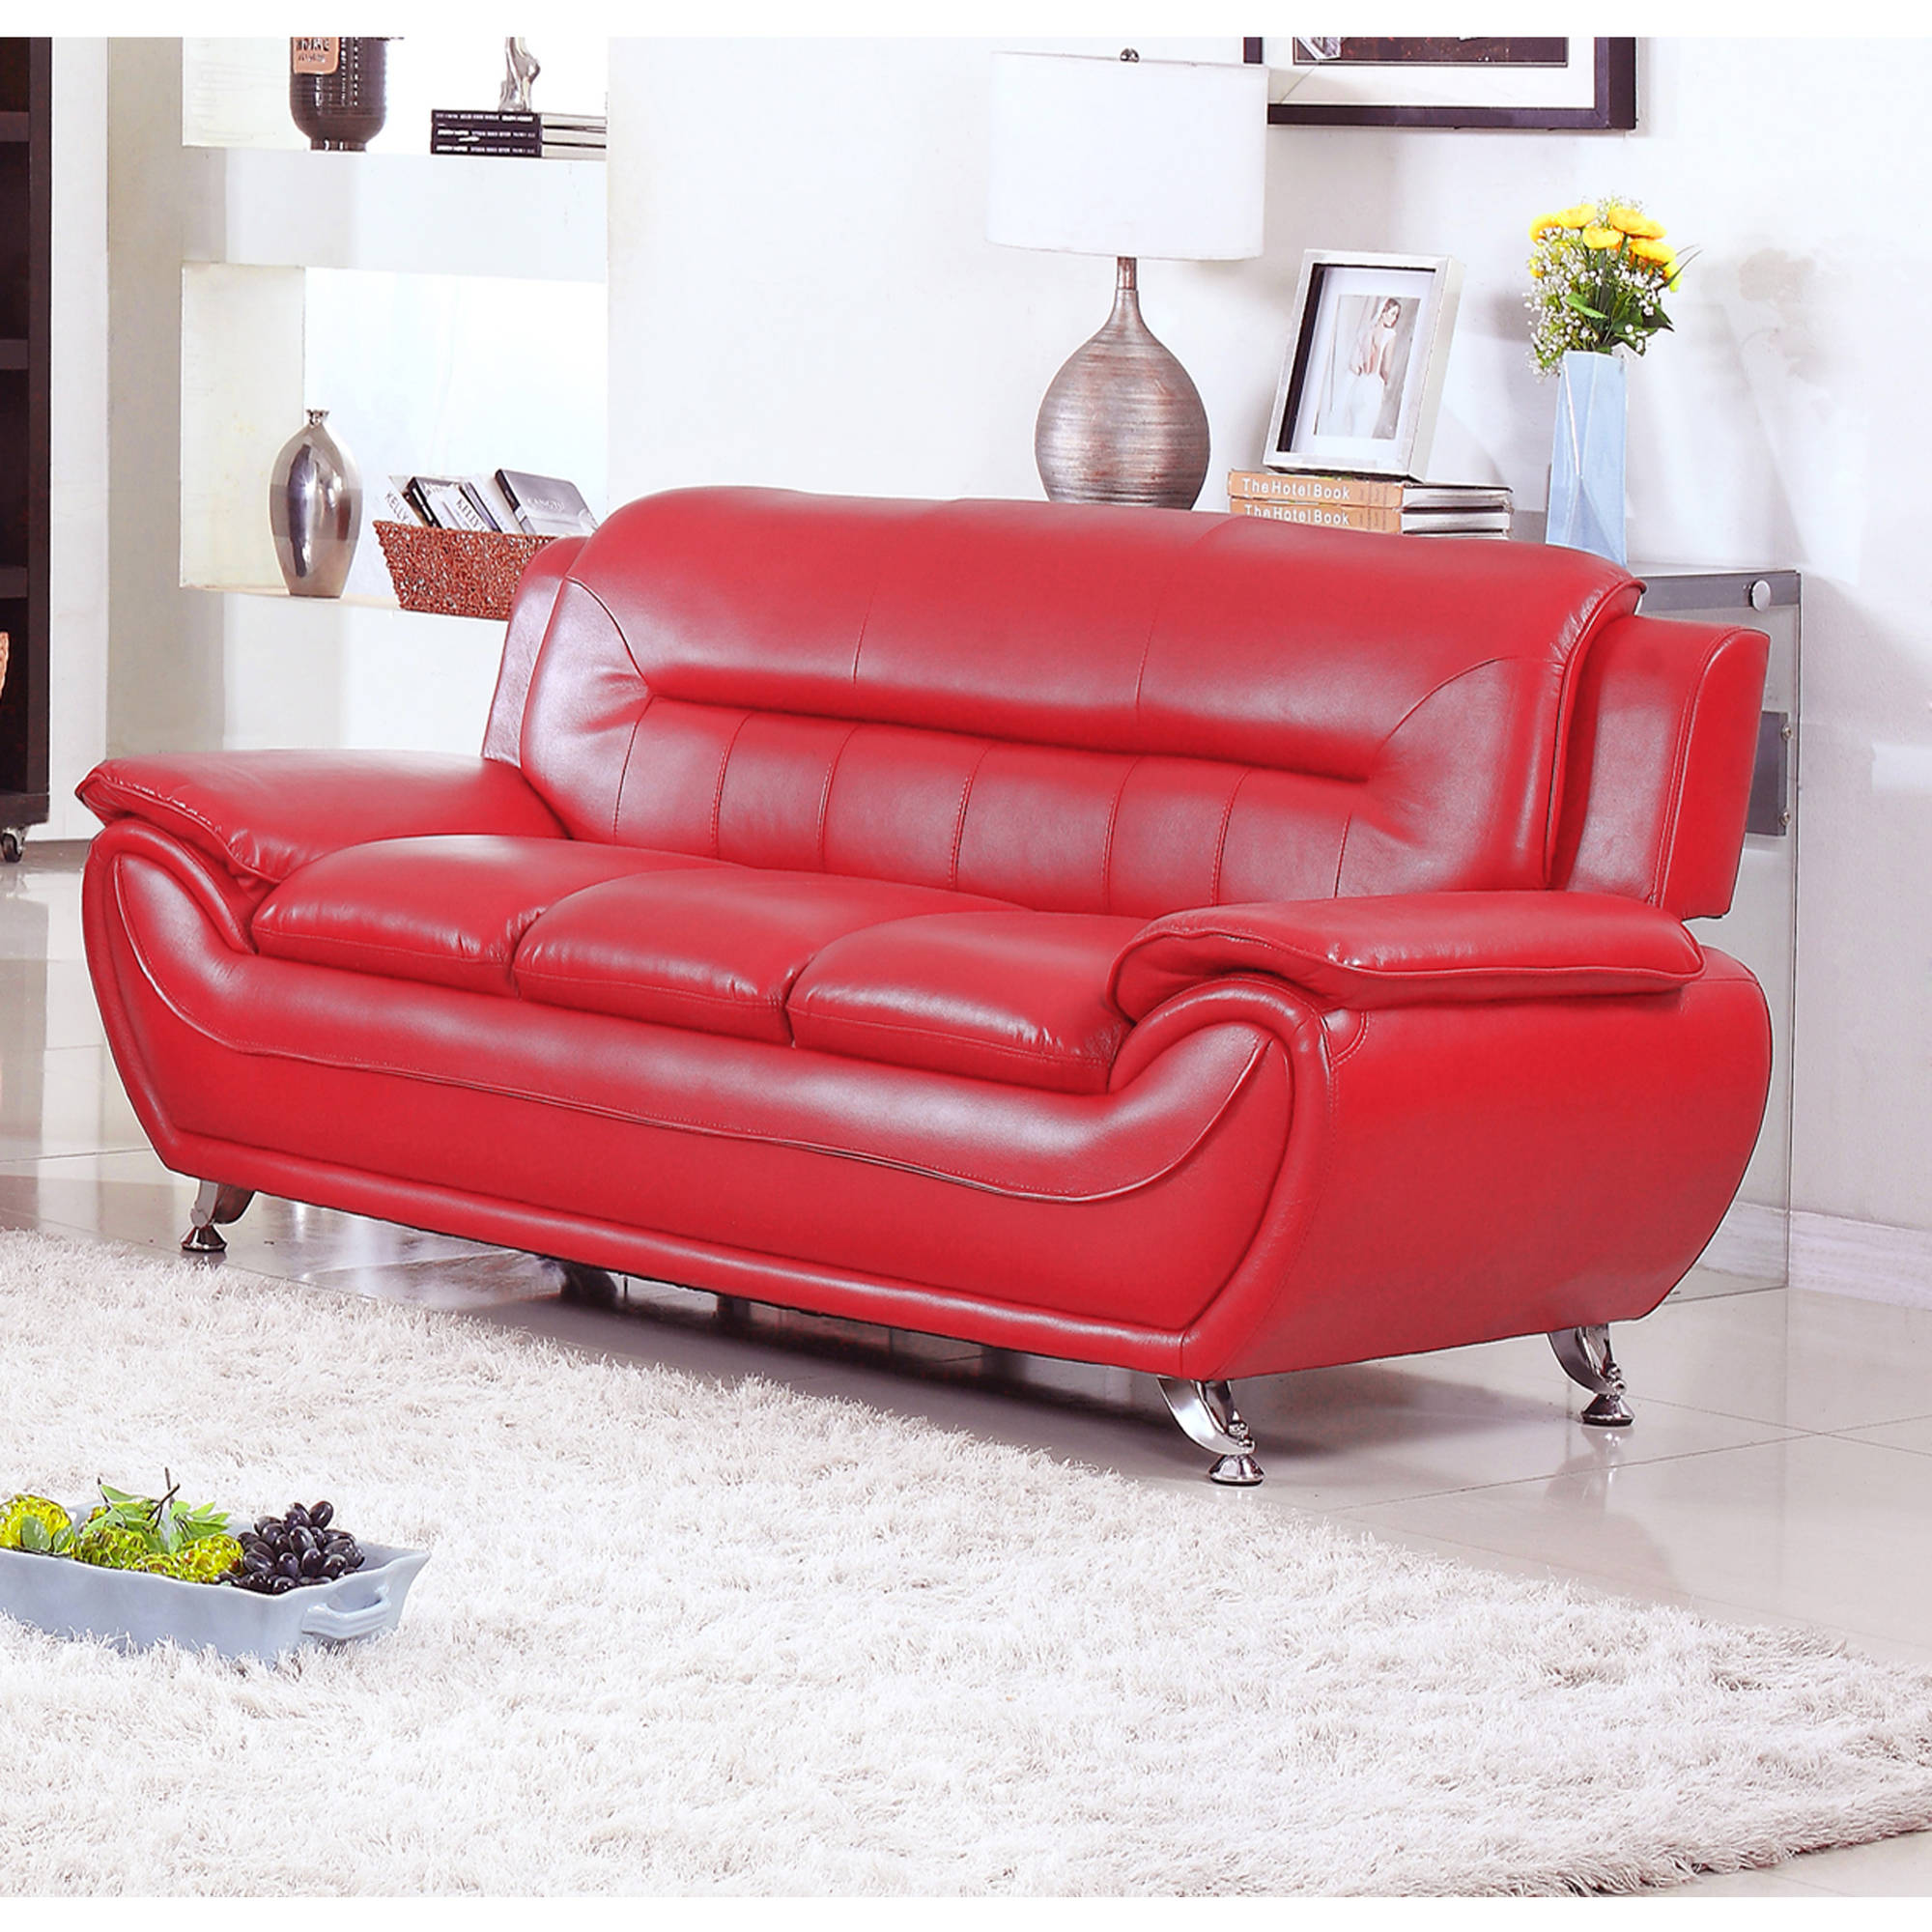 UFE Norton Red Faux Leather Modern Living Room Sofa